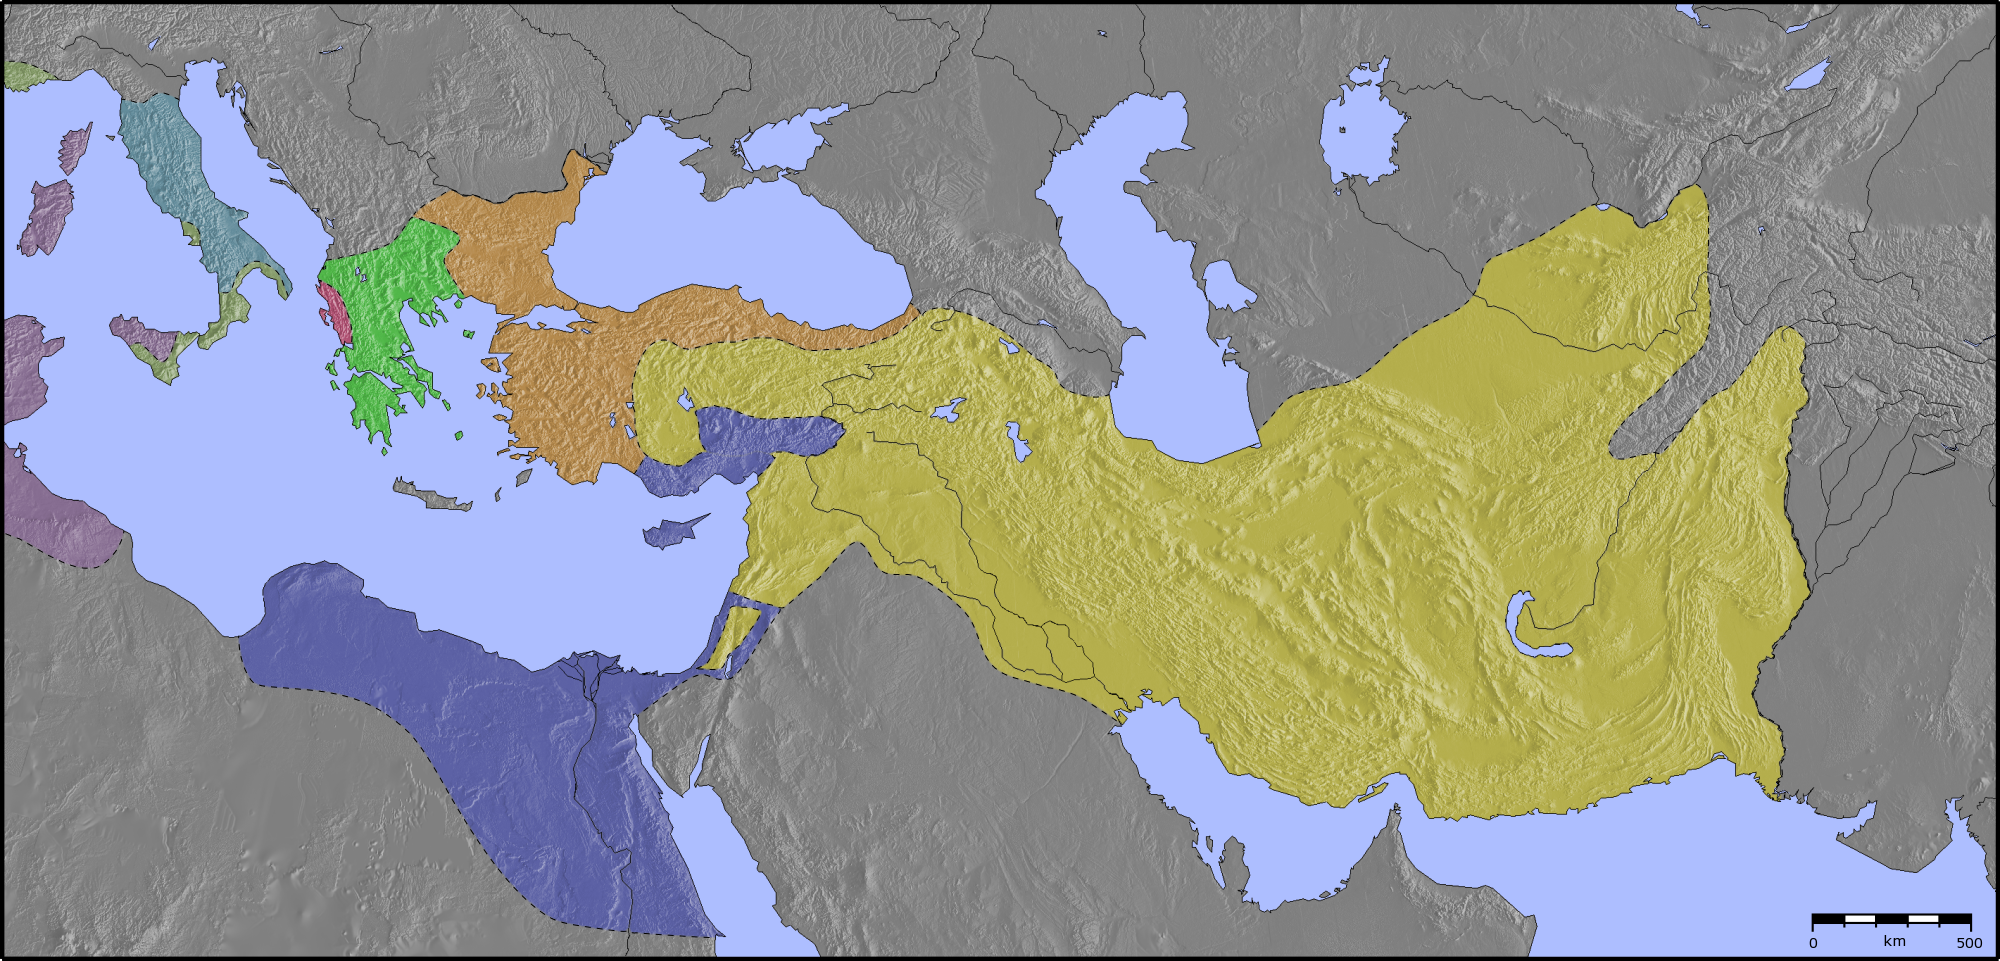 Filehellenistic world 300bc blankg wikimedia commons filehellenistic world 300bc blankg gumiabroncs Image collections